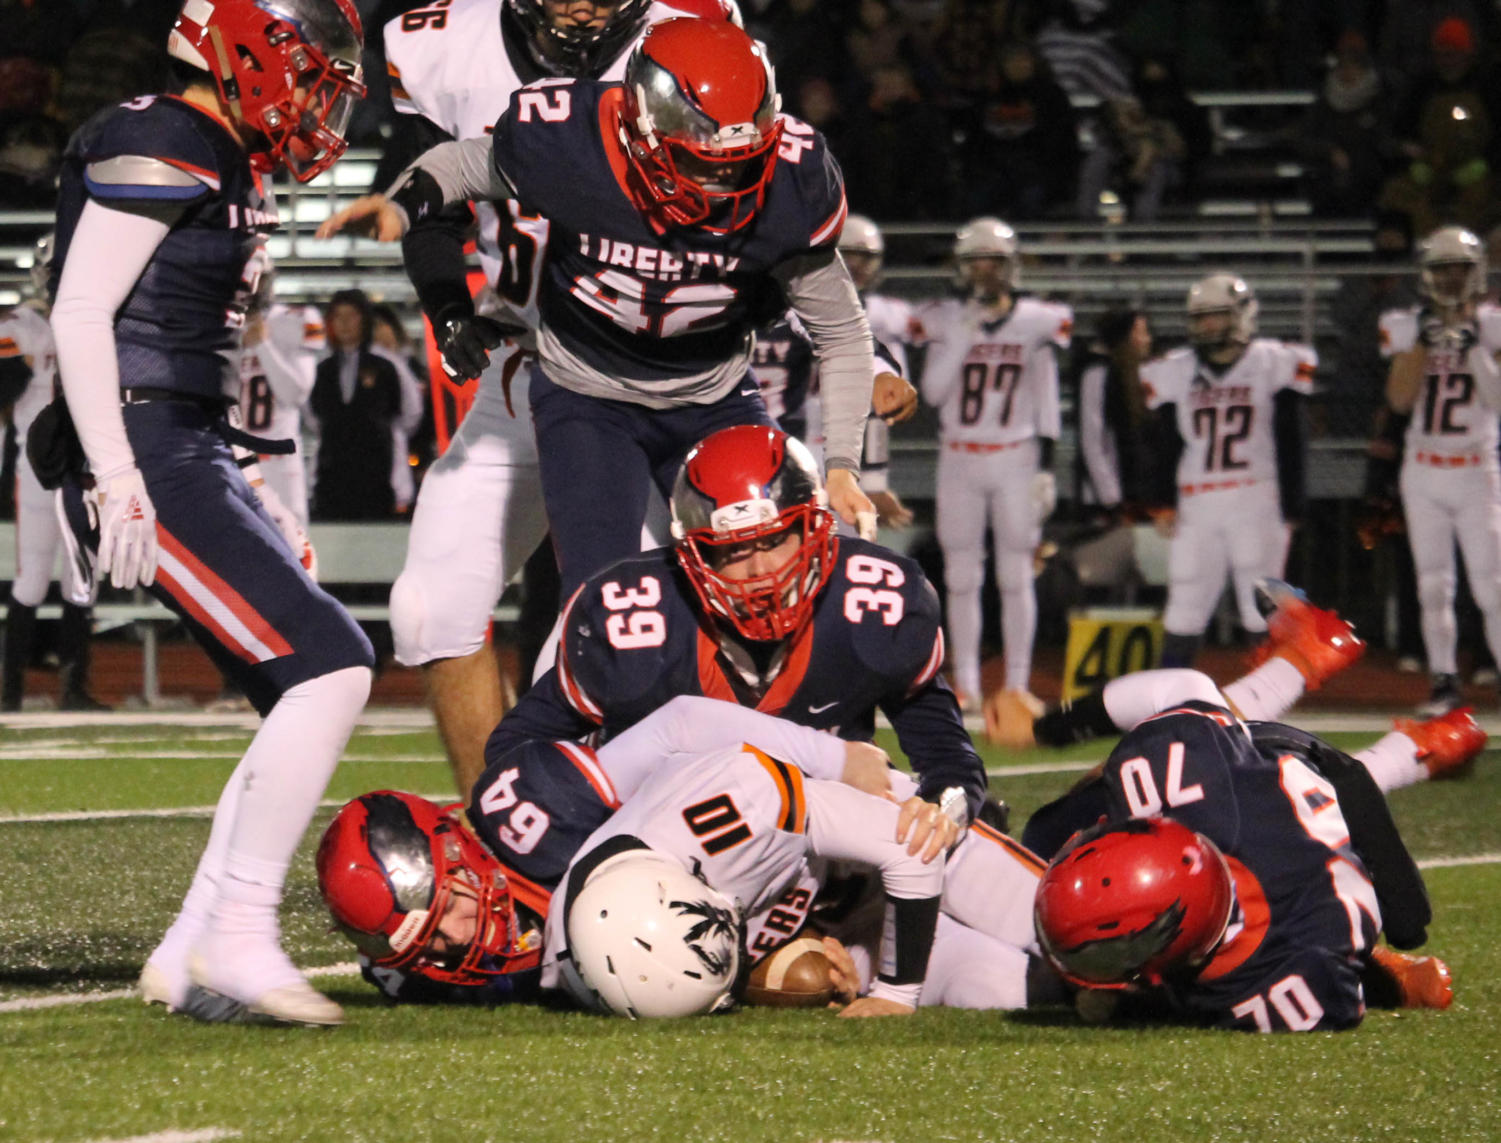 Zach Dotson (39), Anthony Tavolacci (64) and Gabe Gonzalez (70) bring down the Kirksville ball carrier during Liberty's victory in the district semifinal game.